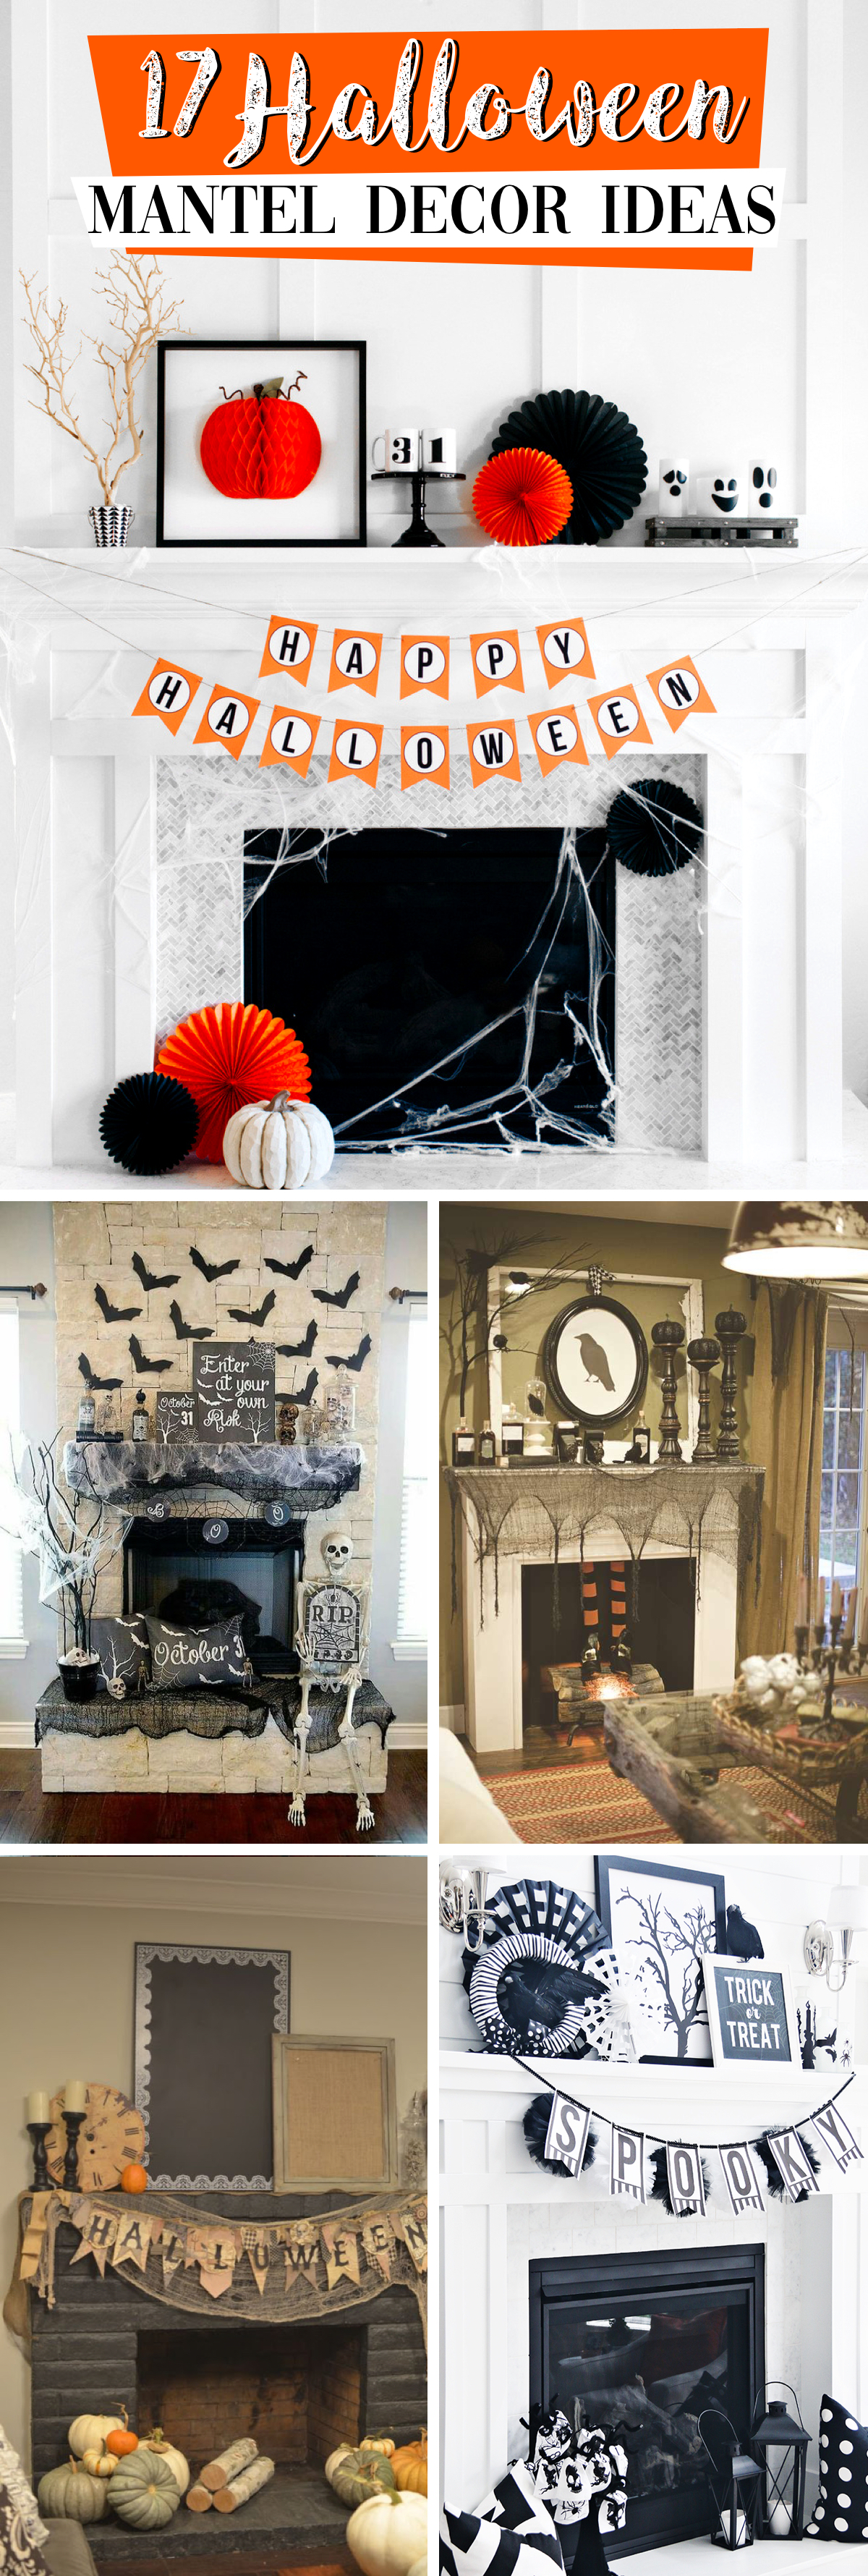 17 Halloween Mantel Decor Ideas That are Easy to Pull Off and Rightly Spooky